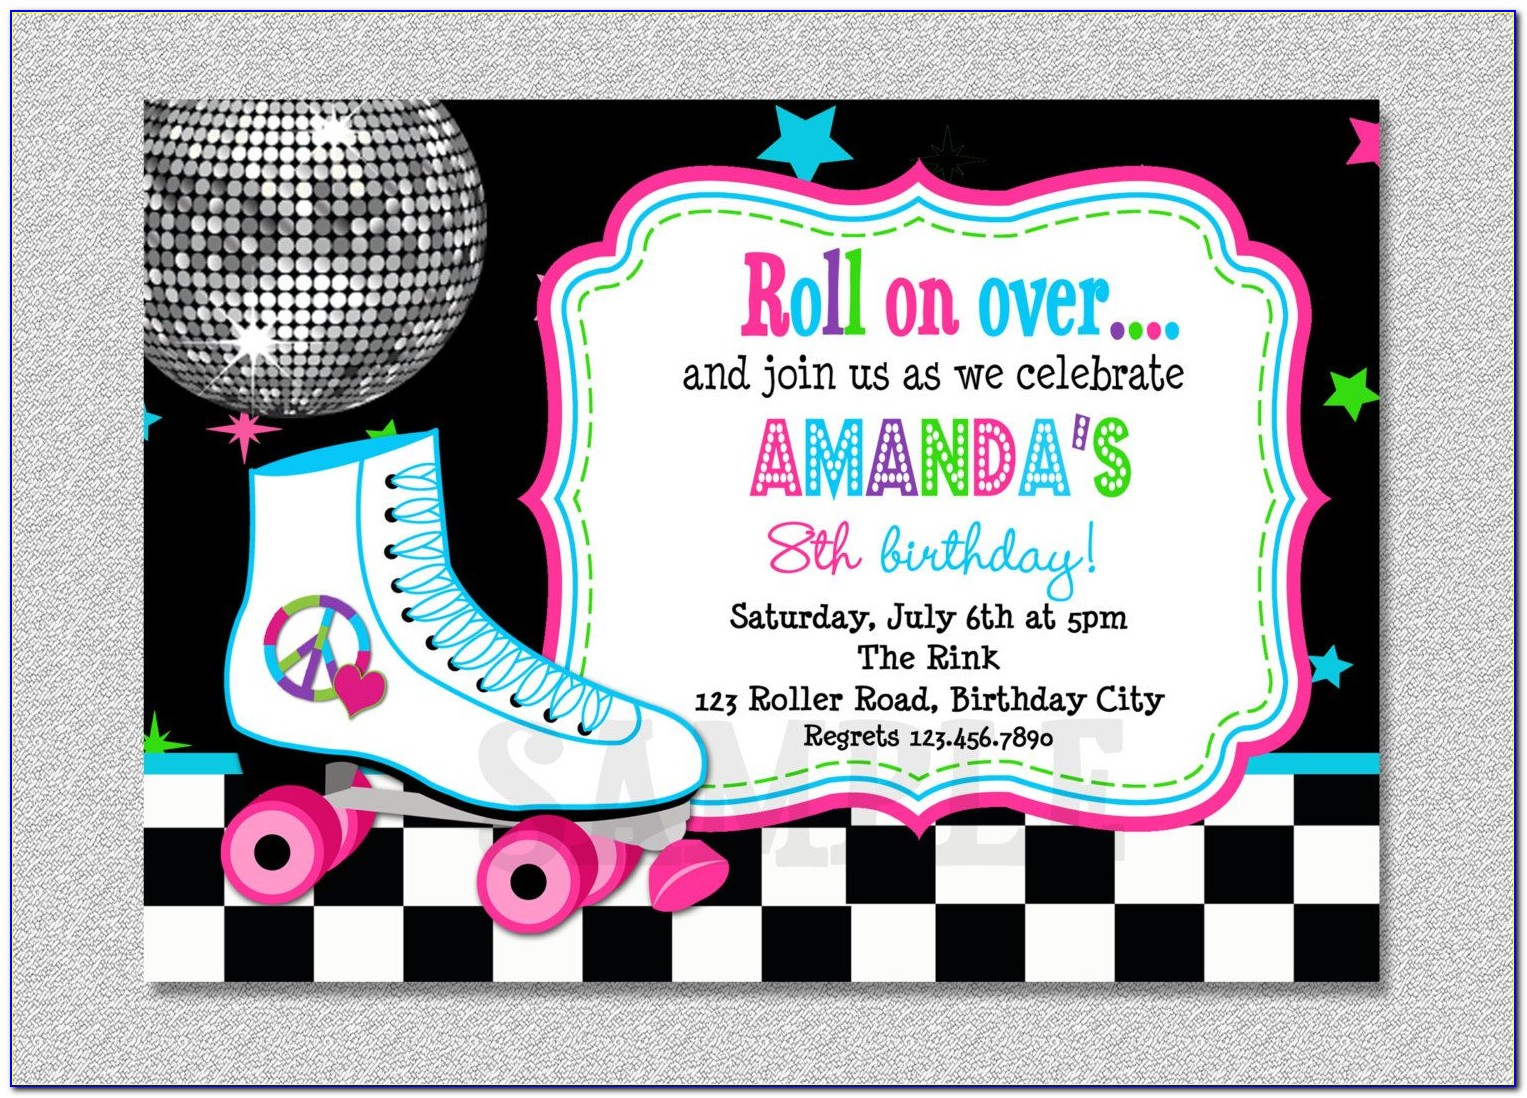 Roller Skating Party Invitations Template Free